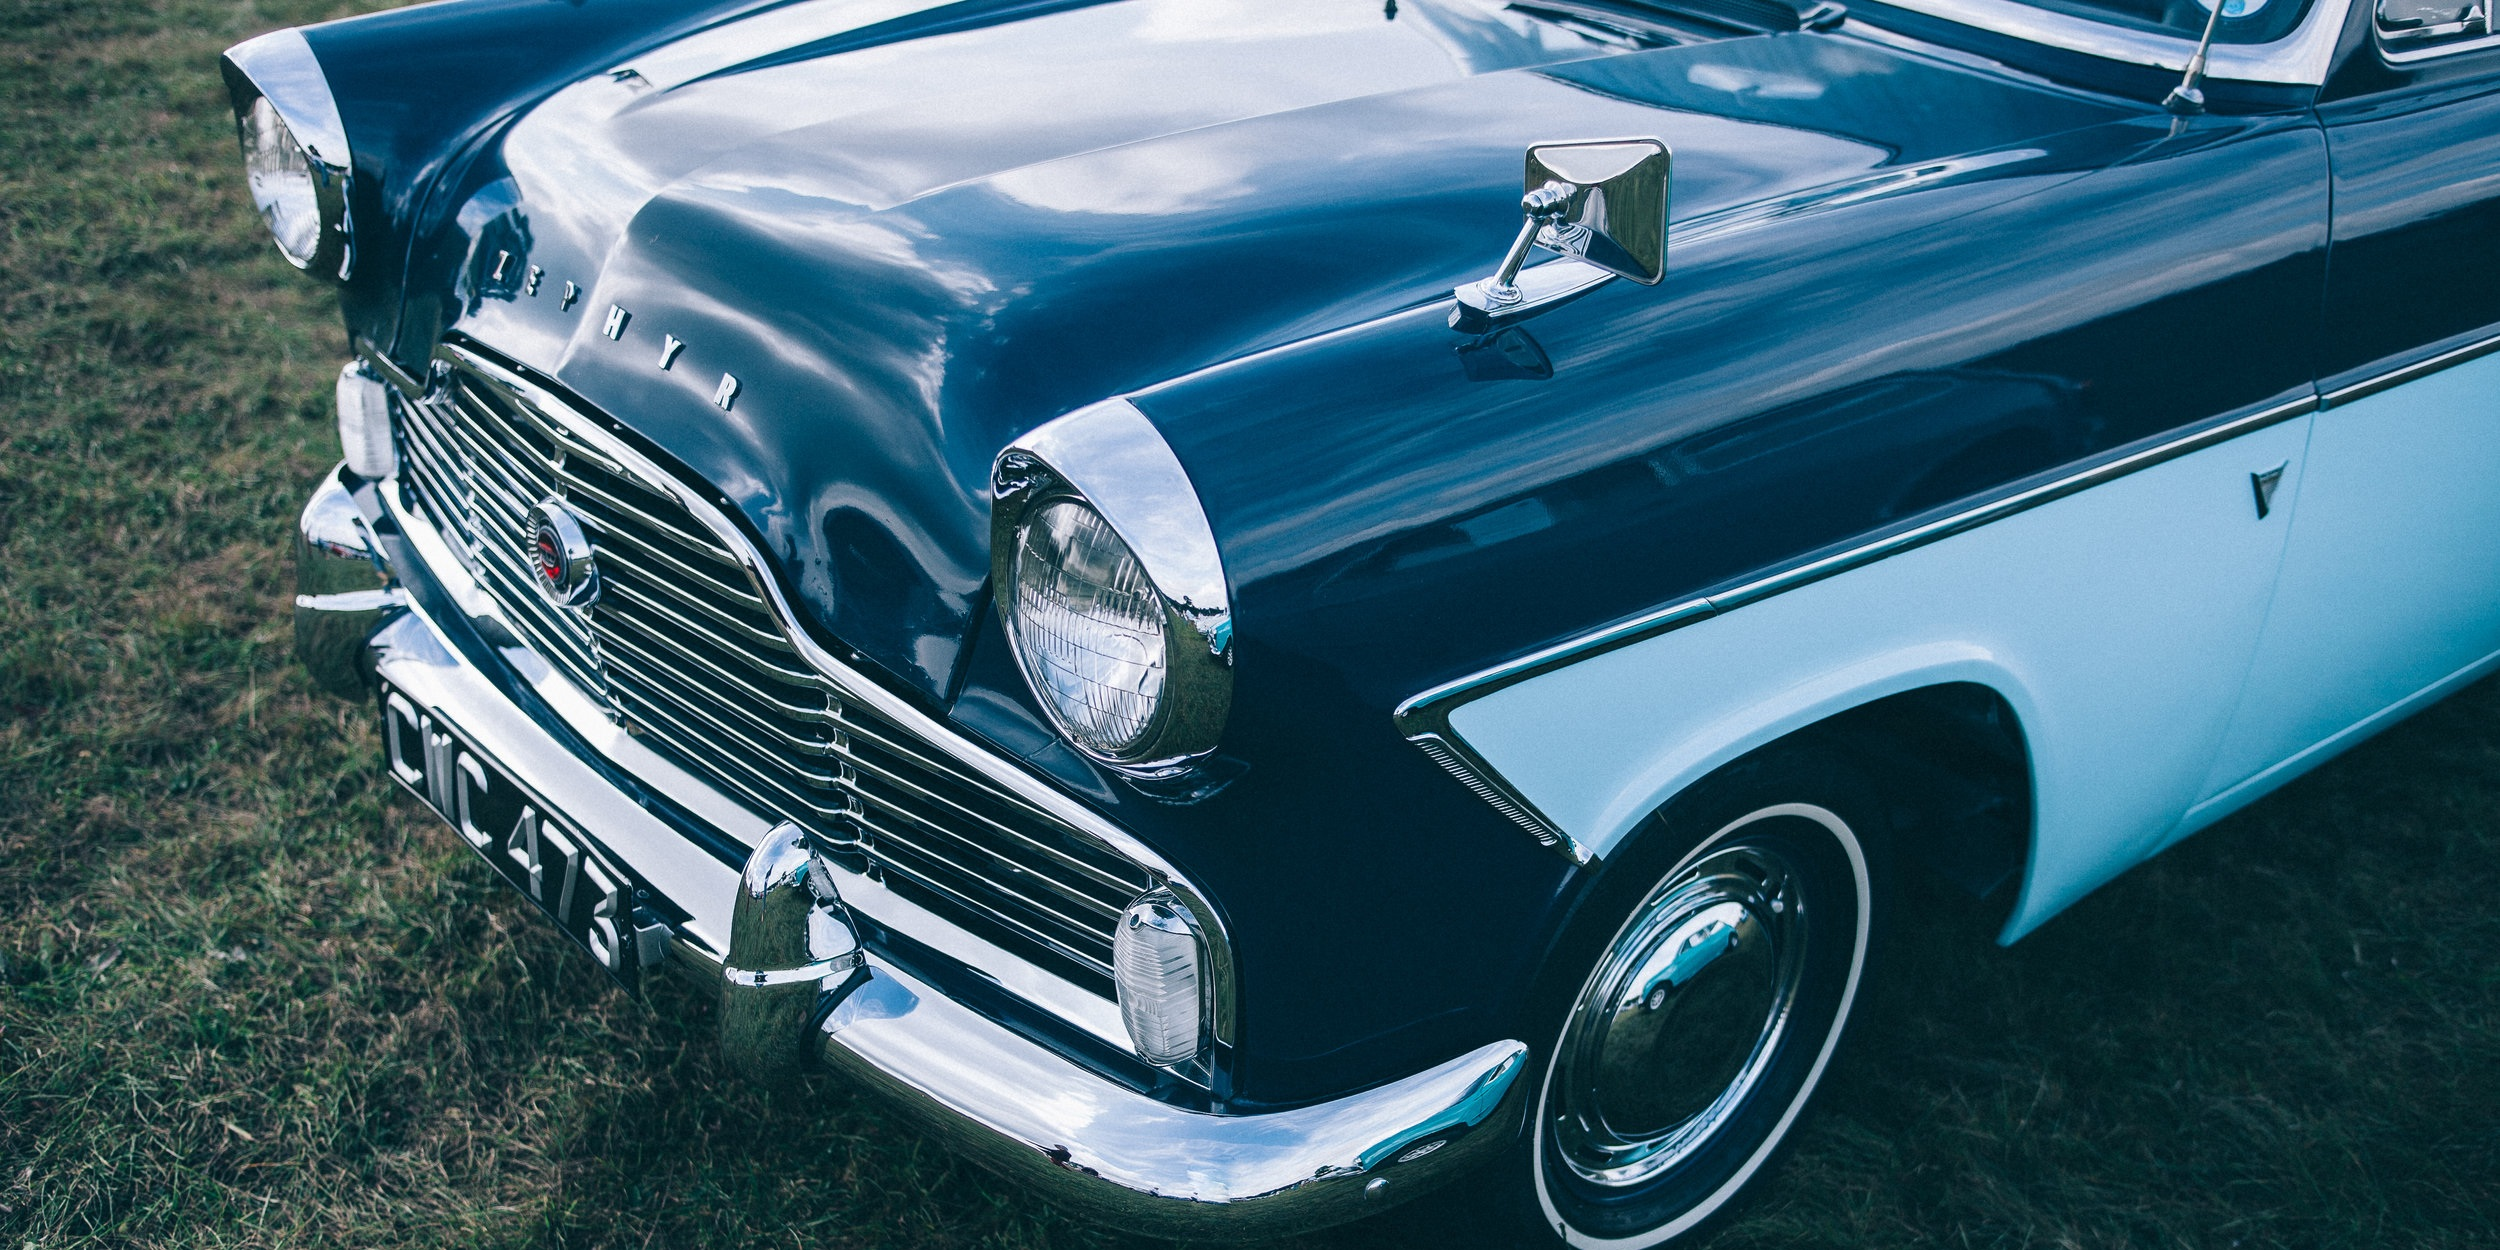 2019 Father's Day Car Show & BBQ - Free admission and free food | Sunday, June 16